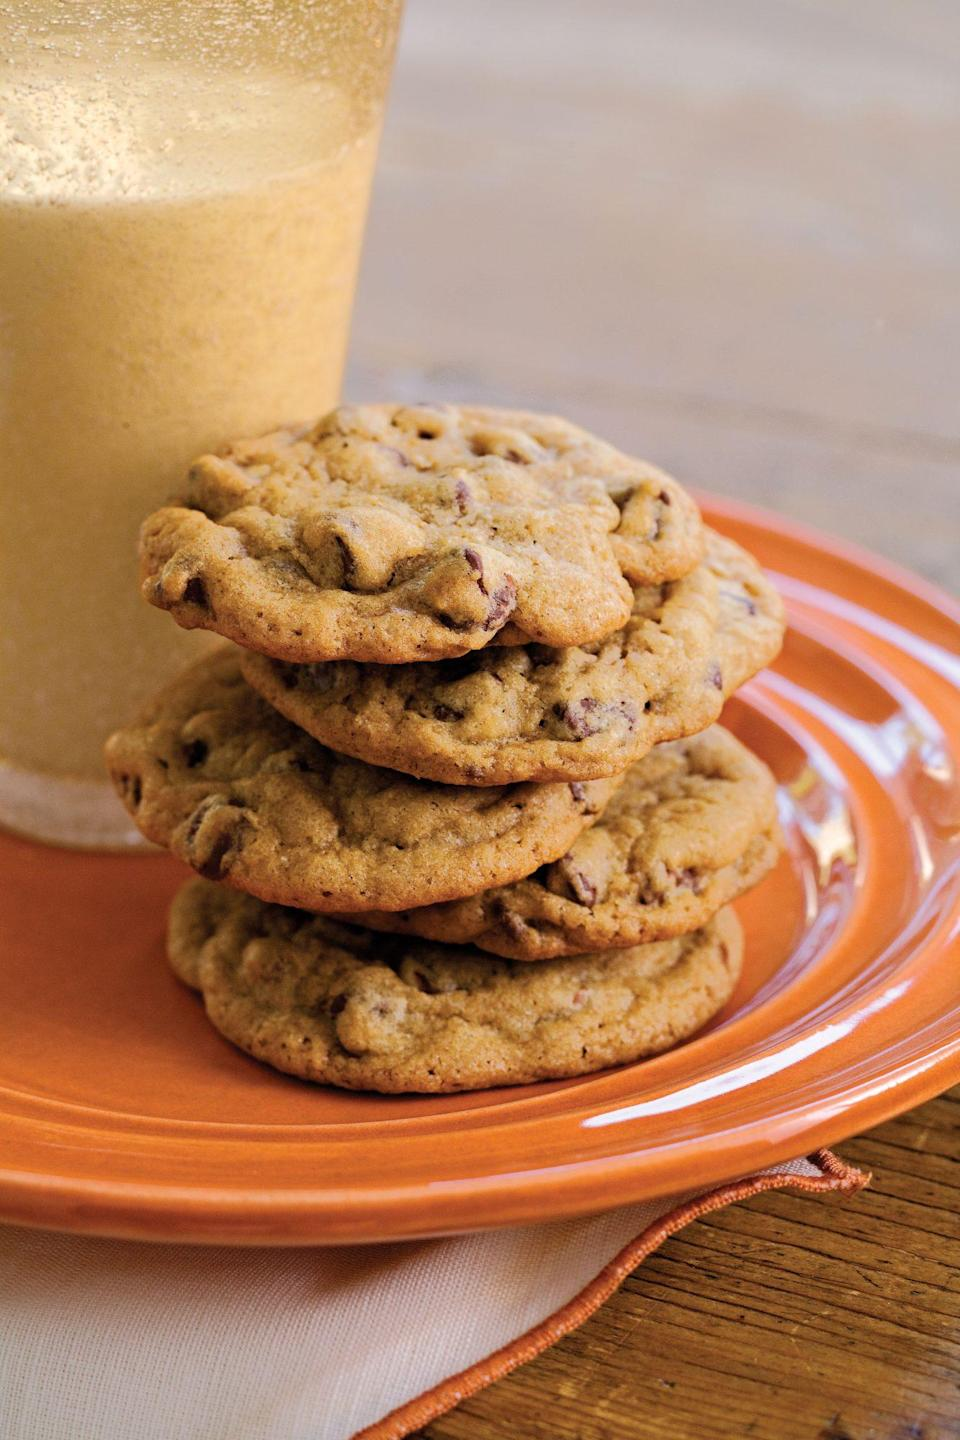 "<p><strong>Recipe: </strong><a href=""http://www.southernliving.com/syndication/all-time-favorite-chocolate-chip-cookies"" rel=""nofollow noopener"" target=""_blank"" data-ylk=""slk:All-Time Favorite Chocolate Chip Cookies"" class=""link rapid-noclick-resp""><strong>All-Time Favorite Chocolate Chip Cookies</strong></a></p> <p>The name says it all: You can never go wrong with this no-frills chocolate chip cookie recipe.</p>"